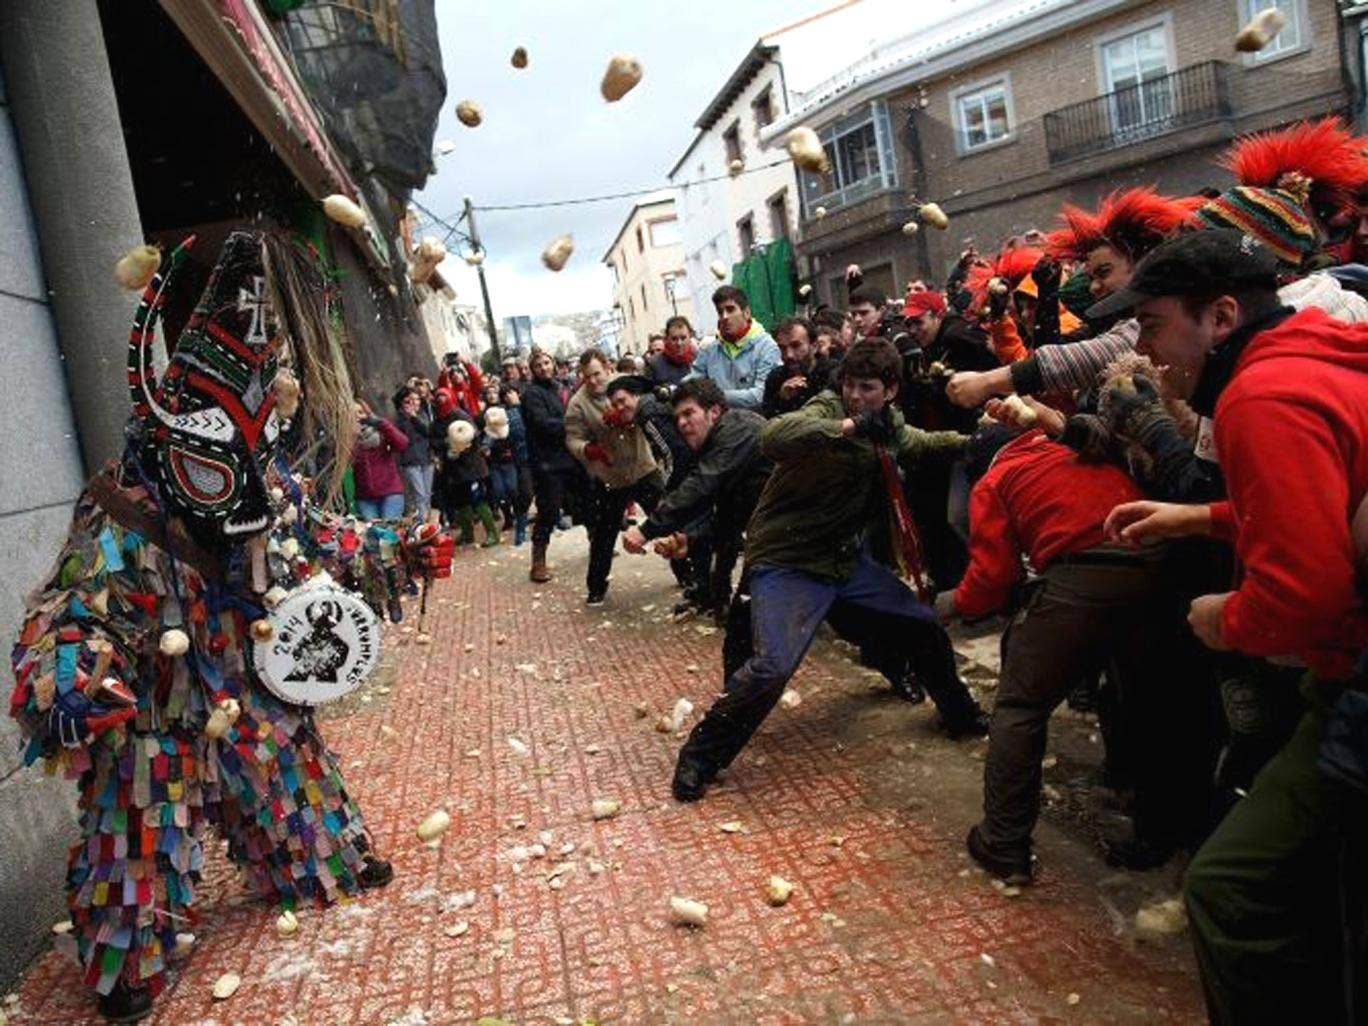 People throw turnips at the Jarramplas as he makes his way through the streets beating his drum during the Jarramplas Festival in Piornal